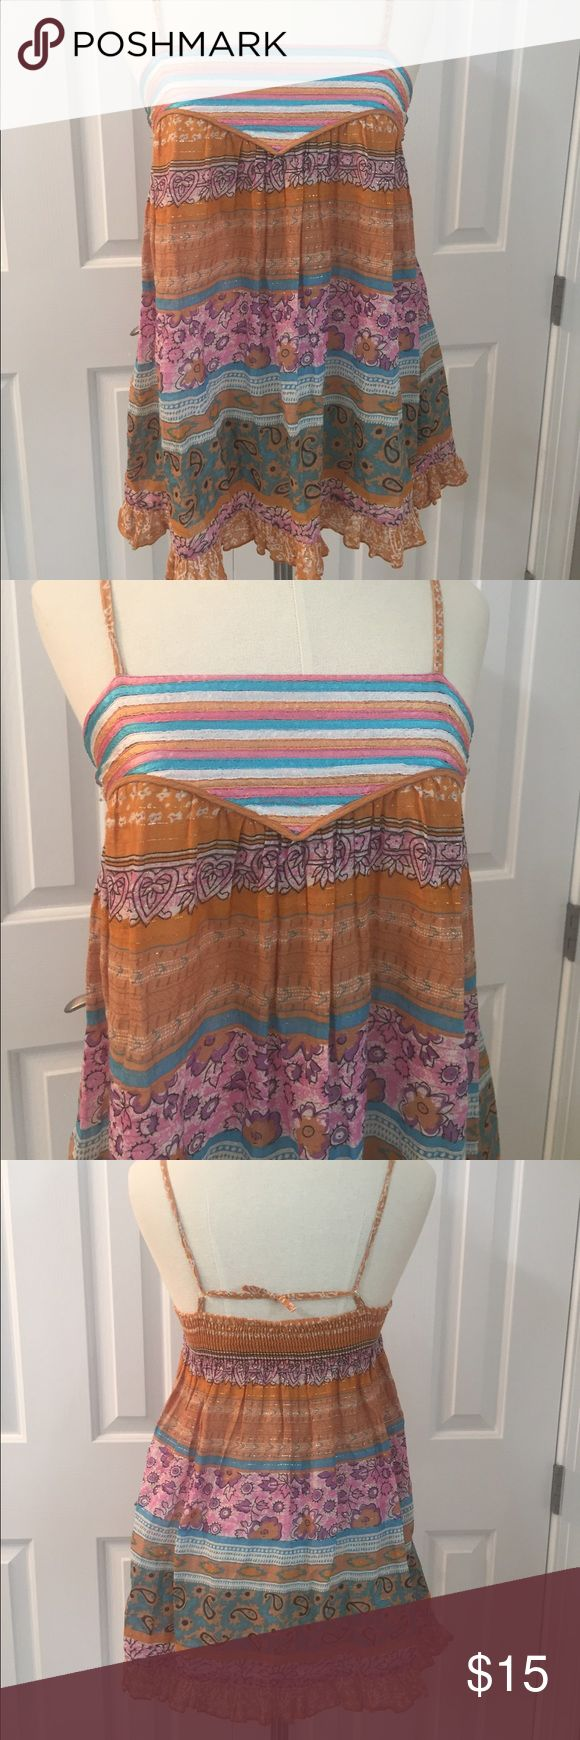 Daytrip BoHo Spaghetti Strap Adjustable Top Large Fun and Flirty multi print top with an elastic smocked back, and adjustable straps. Metallic threads weaved throughout the top make this an eye catcher. Size Large Preowned no visual flaws, good condition. Check out my closet to save on bundles. Reasonable offers accepted. Daytrip Tops